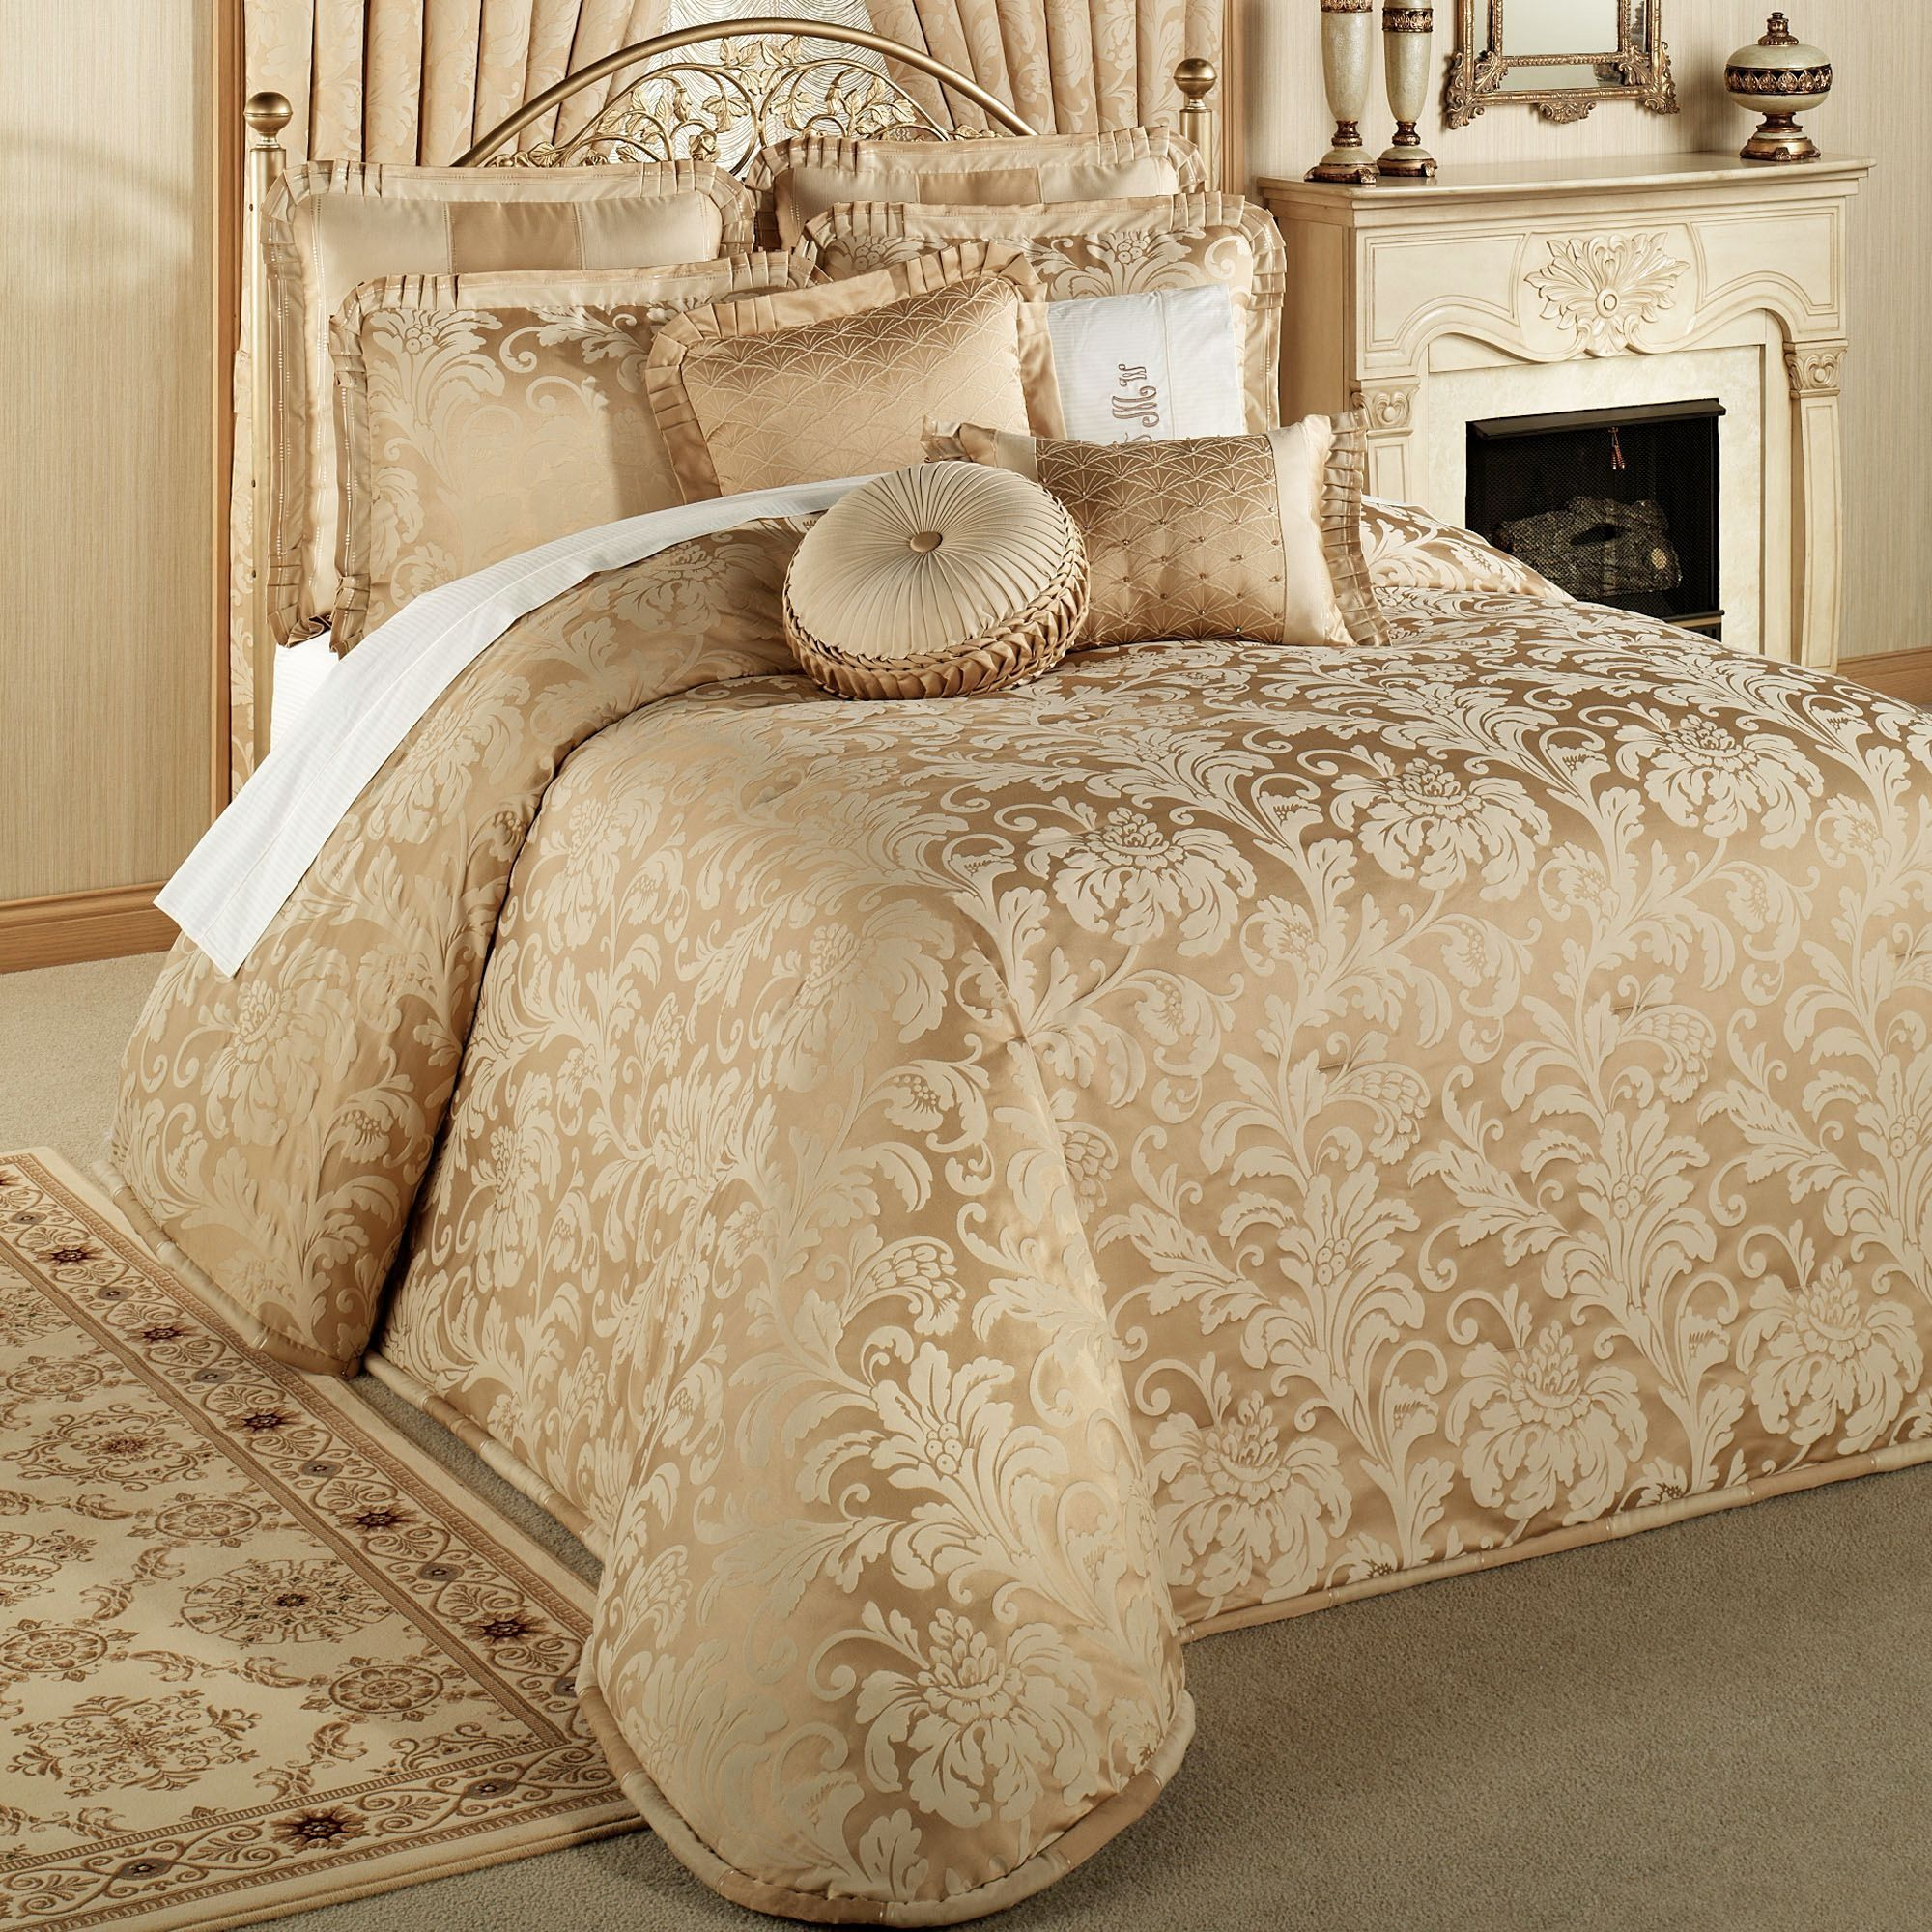 The Elegant Impression White Oversized King Bedding Ideas In Hotel King Size Bedroom Sets Bed Spreads King Sized Bedroom